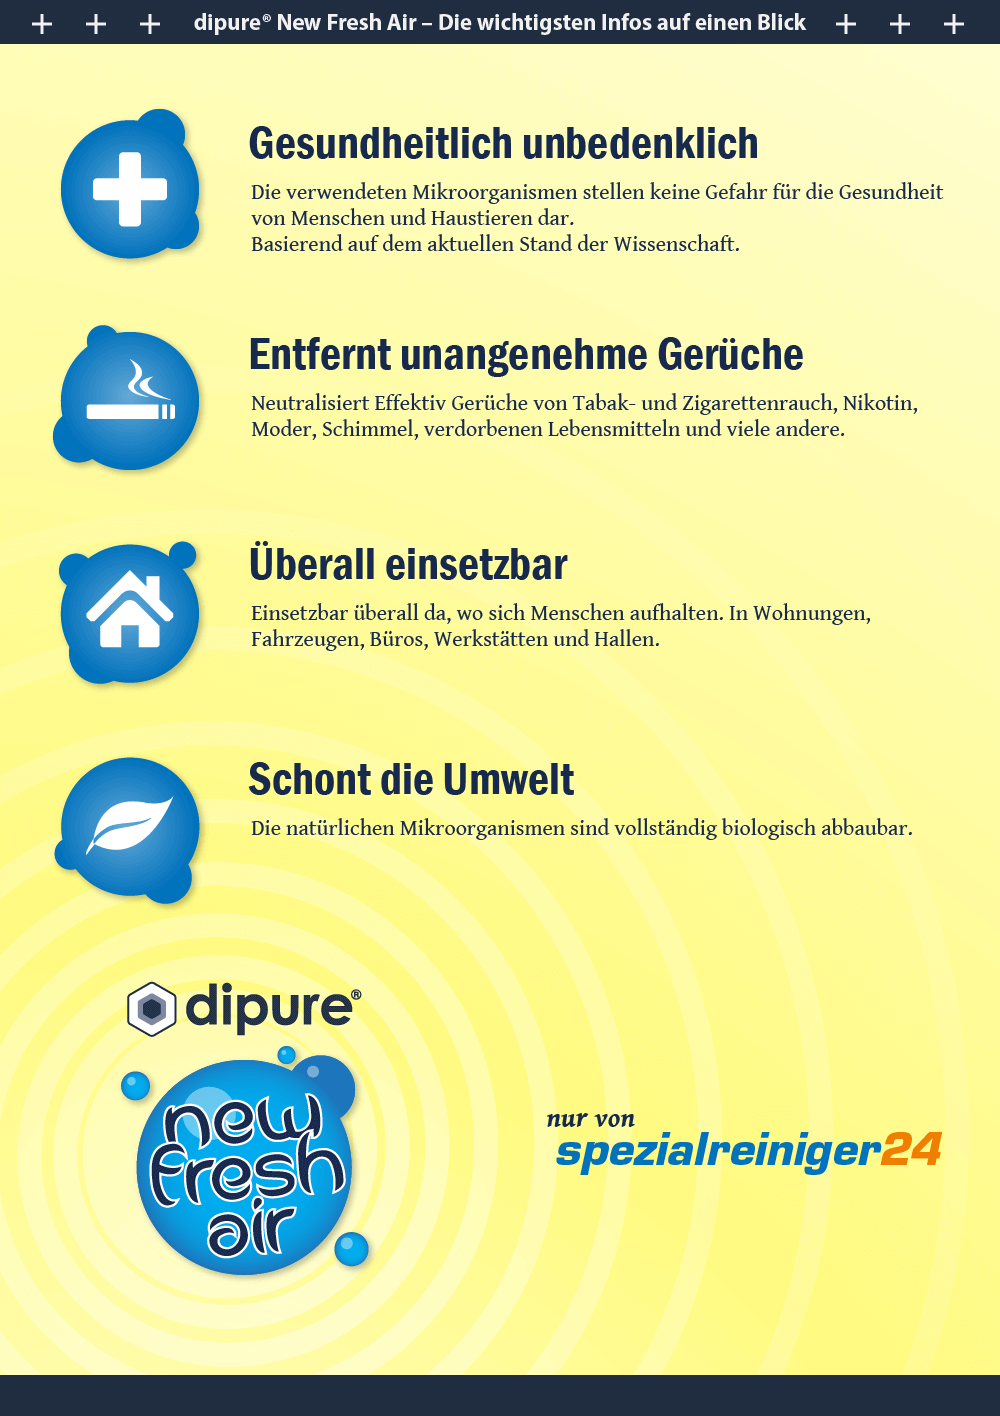 New Fresh Air Geruchsentferner Infografik